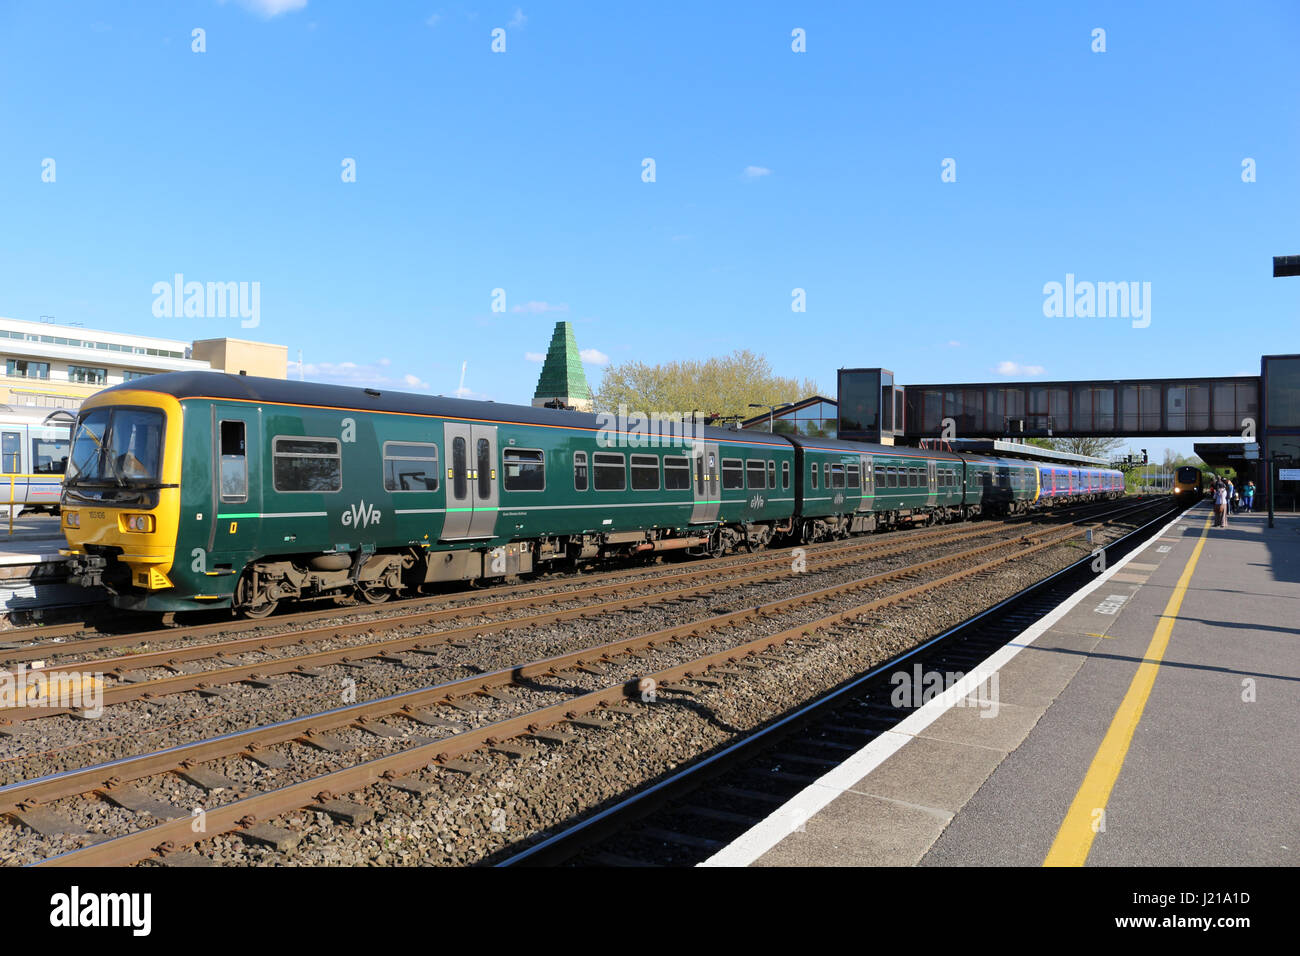 Class 165 turbo diesel multiple unit train in Great Western Railway green livery at Oxford station with passenger - Stock Image